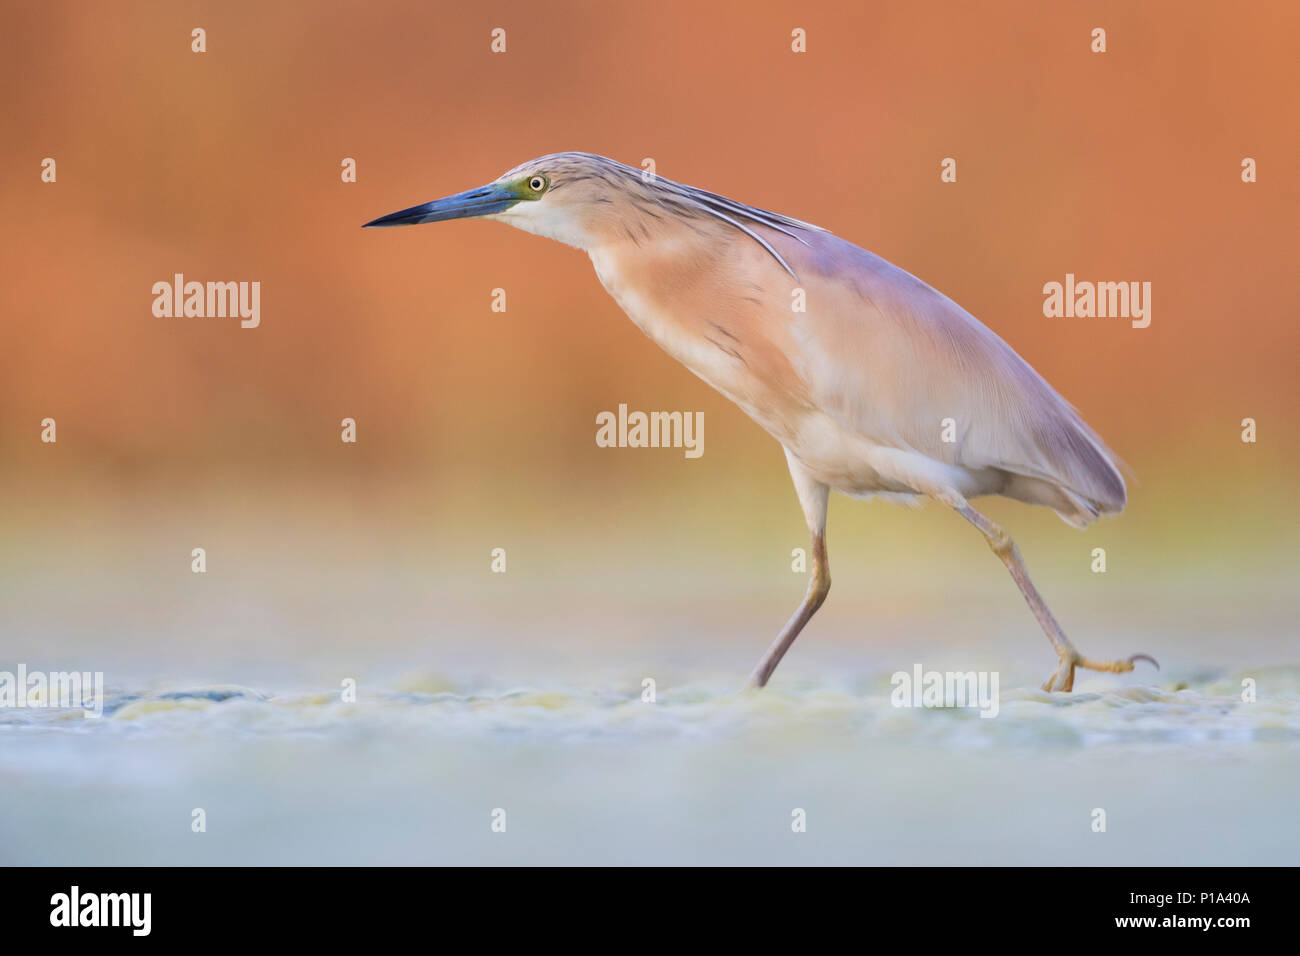 Squacco Heron (Ardeola ralloides), adult walking in a swamp - Stock Image